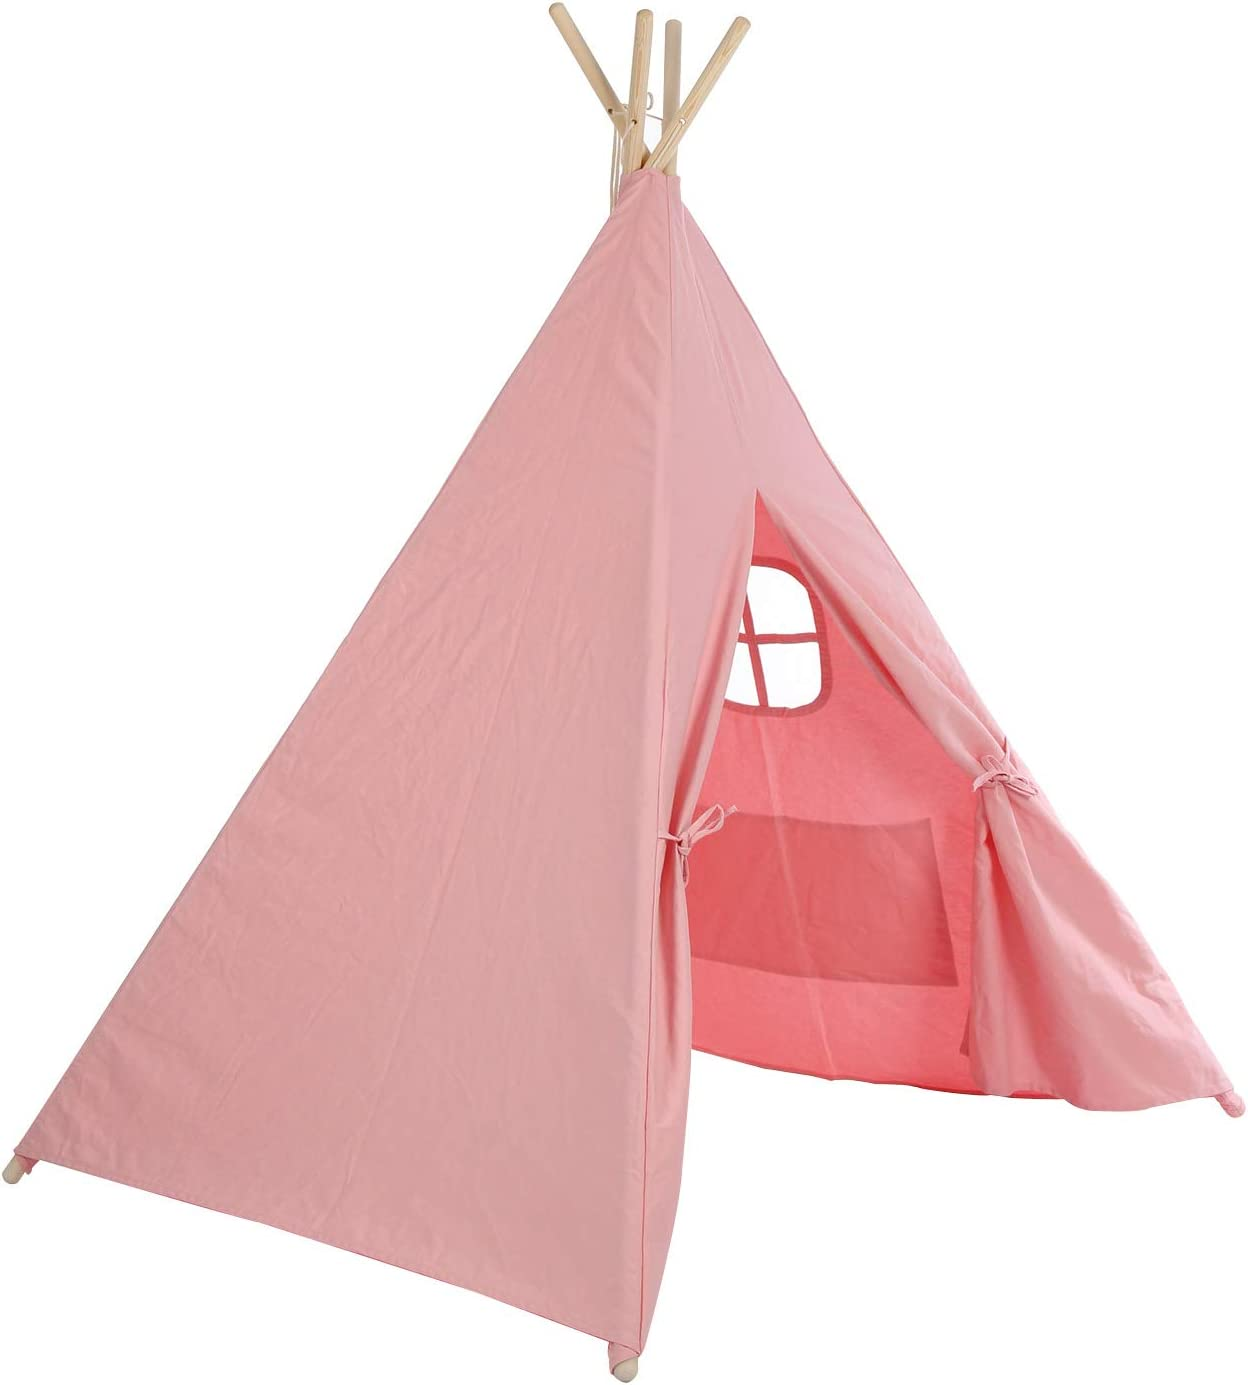 Jueyan Childrens Teepee Play Tent Canvas Kids Traditional Wild Indoor Outdoor Portable Indian Wigwam Black Strip